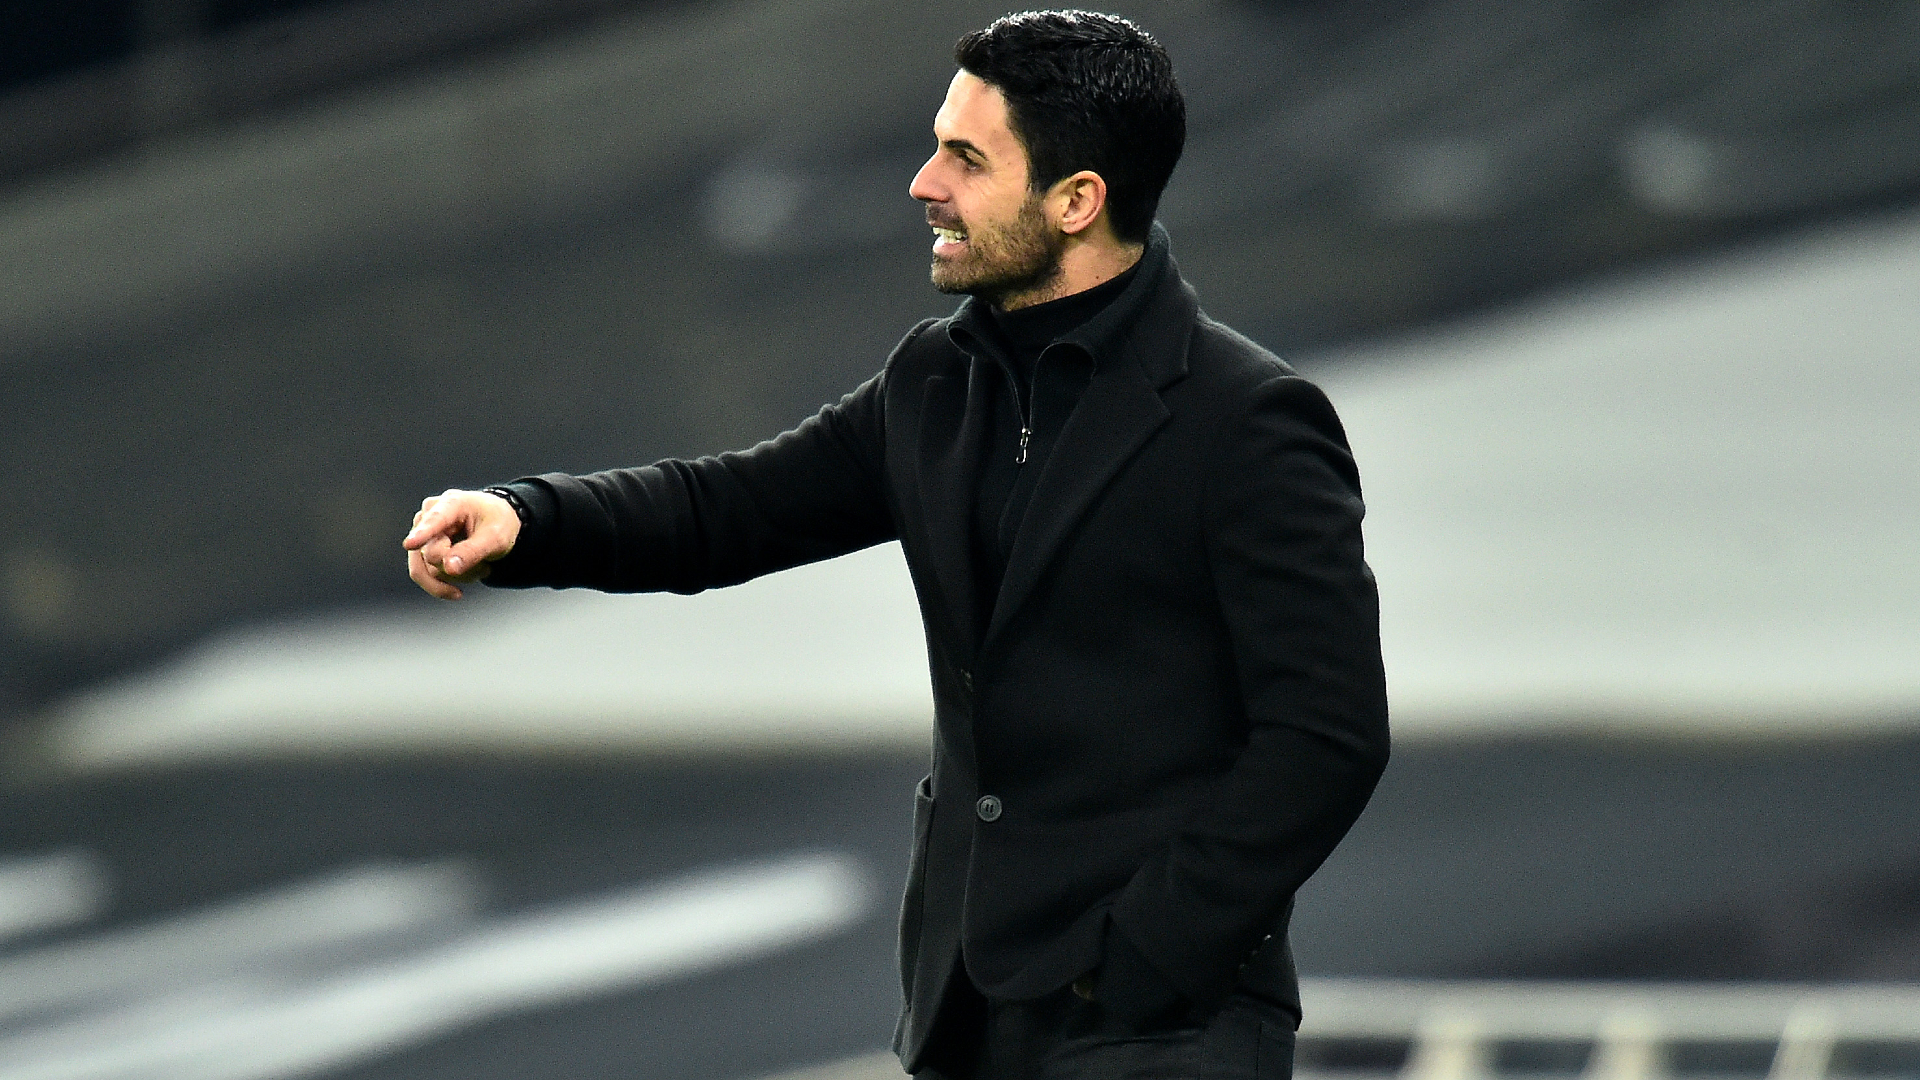 Arsenal unlikely to get back into Europe this season but Arteta should be given time, says Winterburn